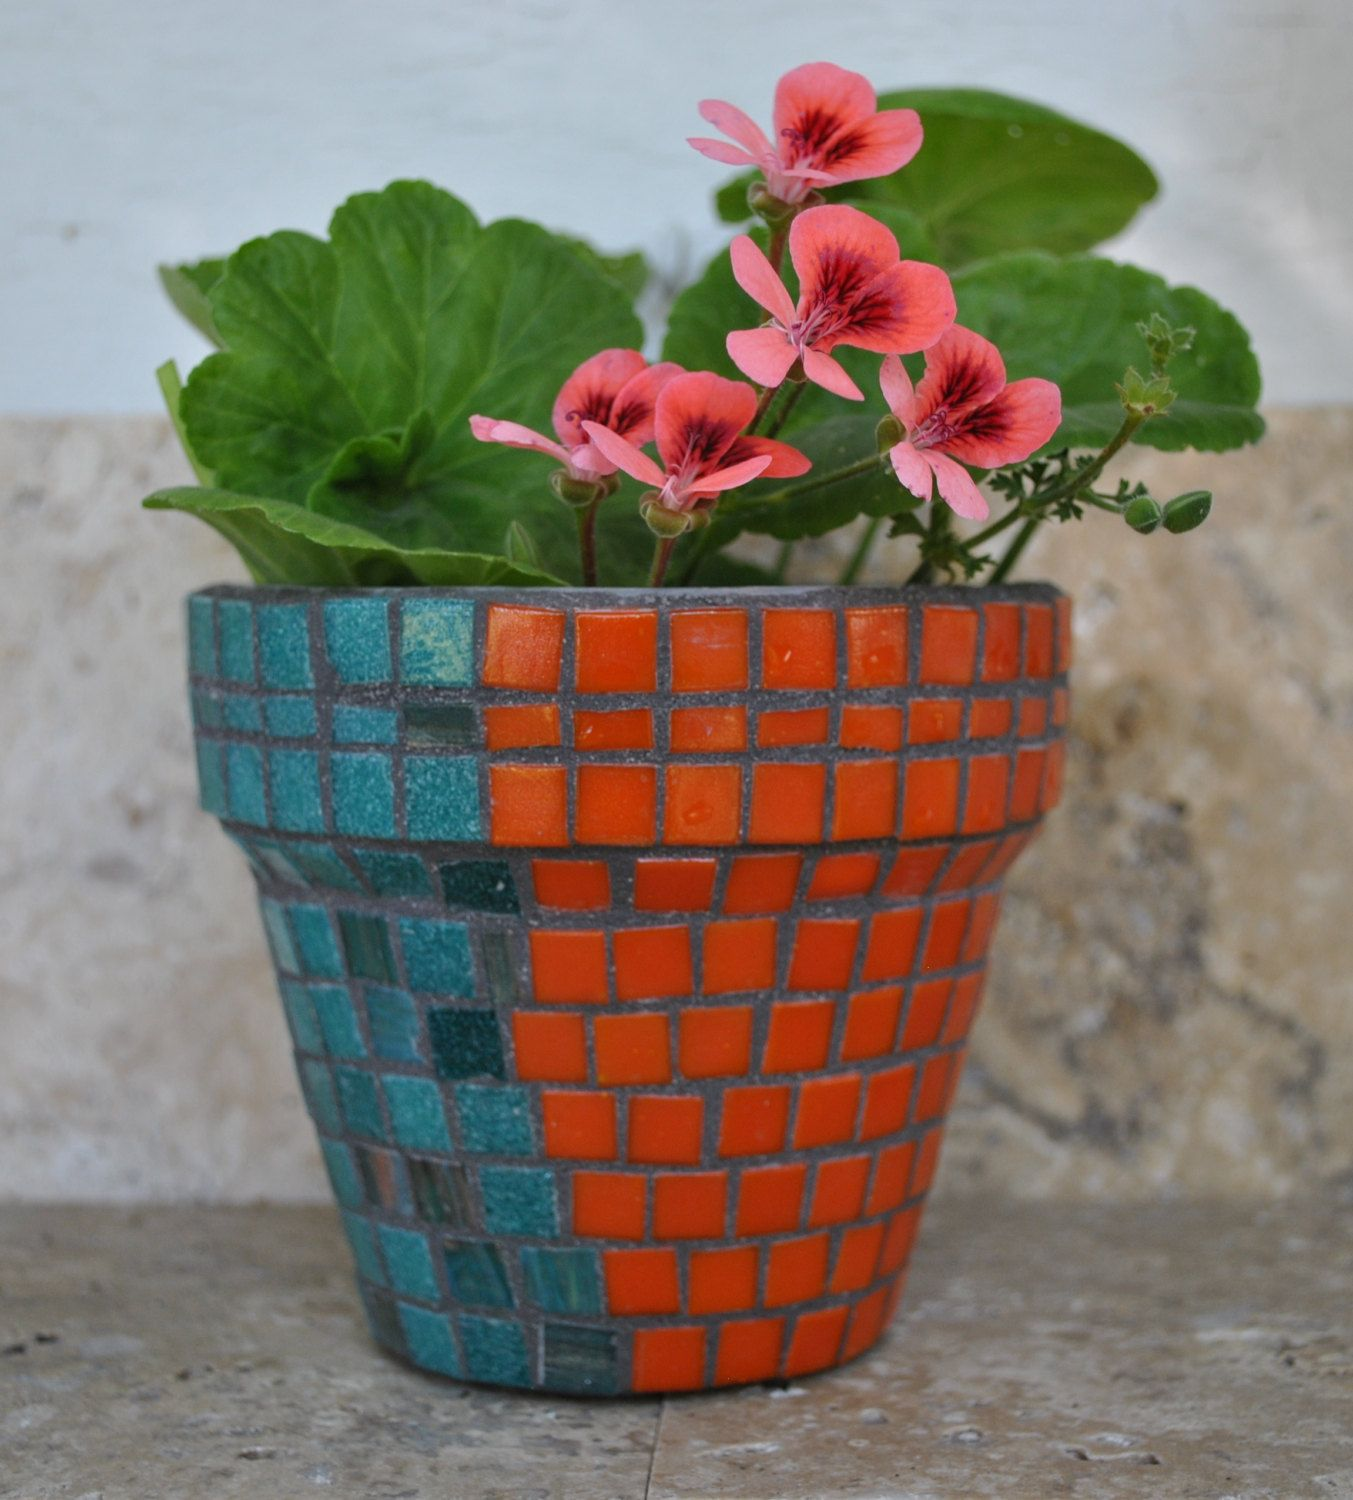 Tile Mosaic Planter Pot Succulents 4 Flower Pot Custom Colors With Images Mosaic Planters Mosaic Flower Pots Flower Pots